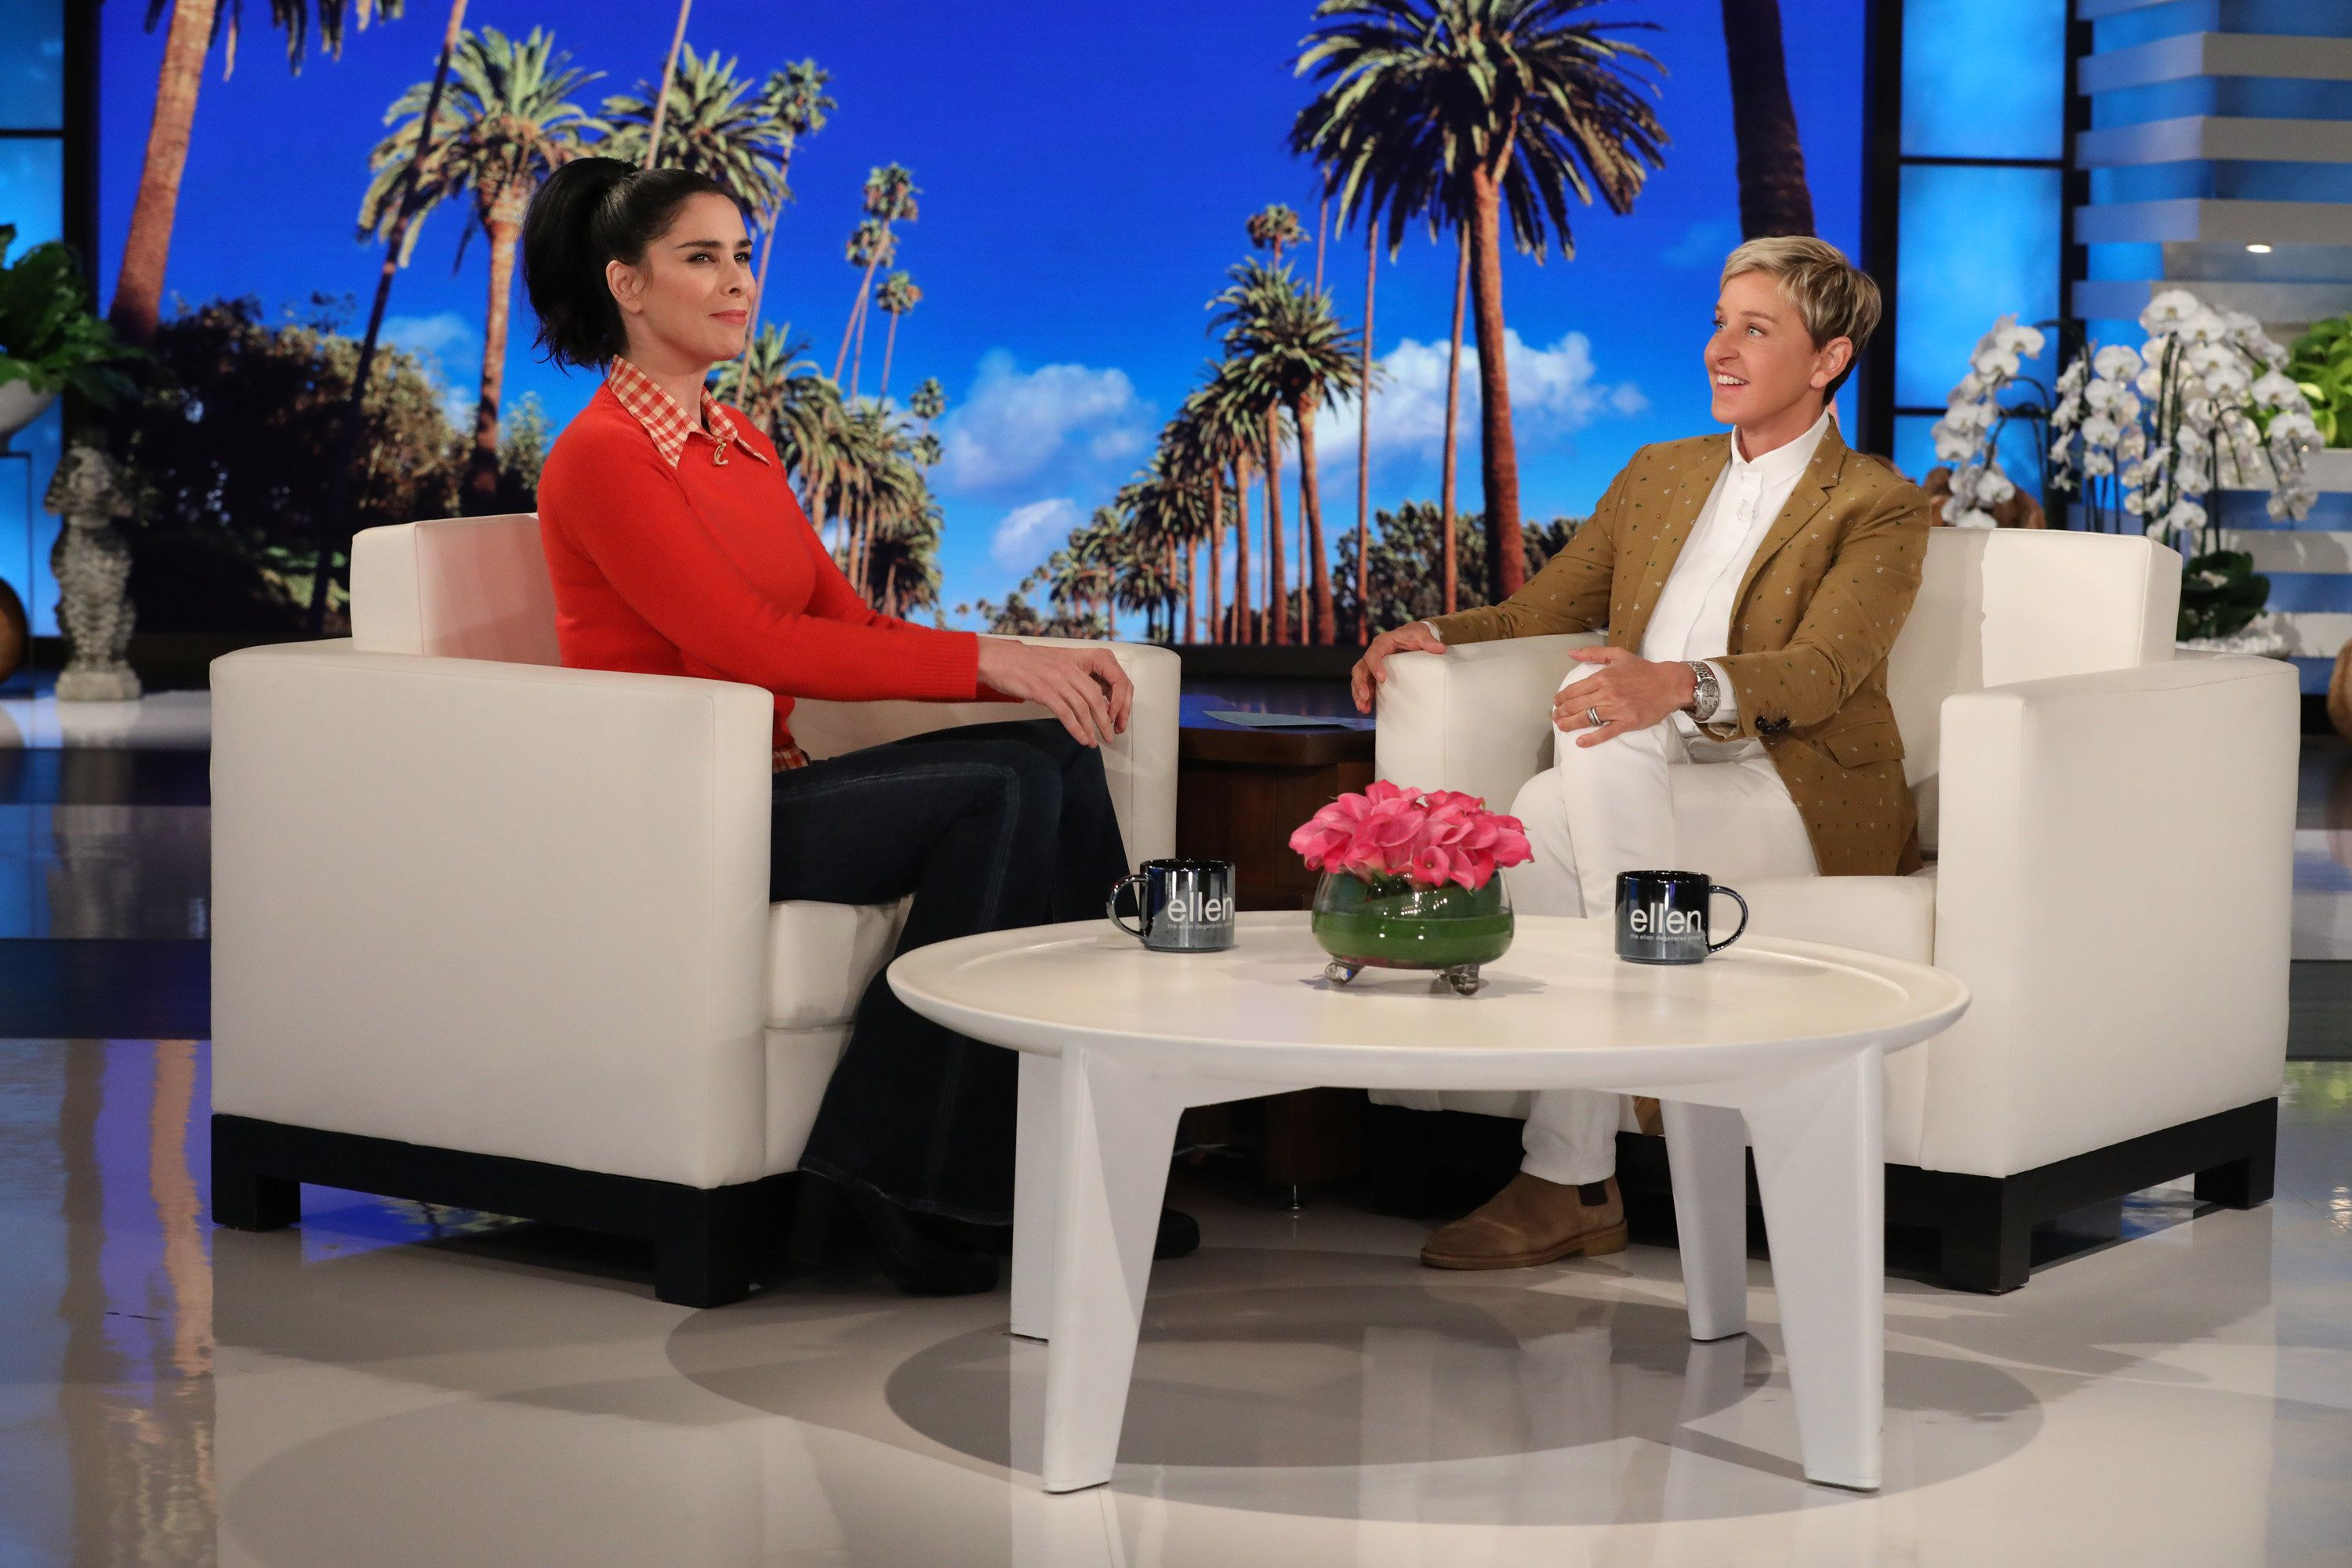 """In this photo released by Warner Bros., talk show host Ellen DeGeneres is seen during a taping of """"The Ellen DeGeneres Show"""" at the Warner Bros. lot in Burbank, Calif. (Photo by Michael Rozman/Warner Bros.)"""